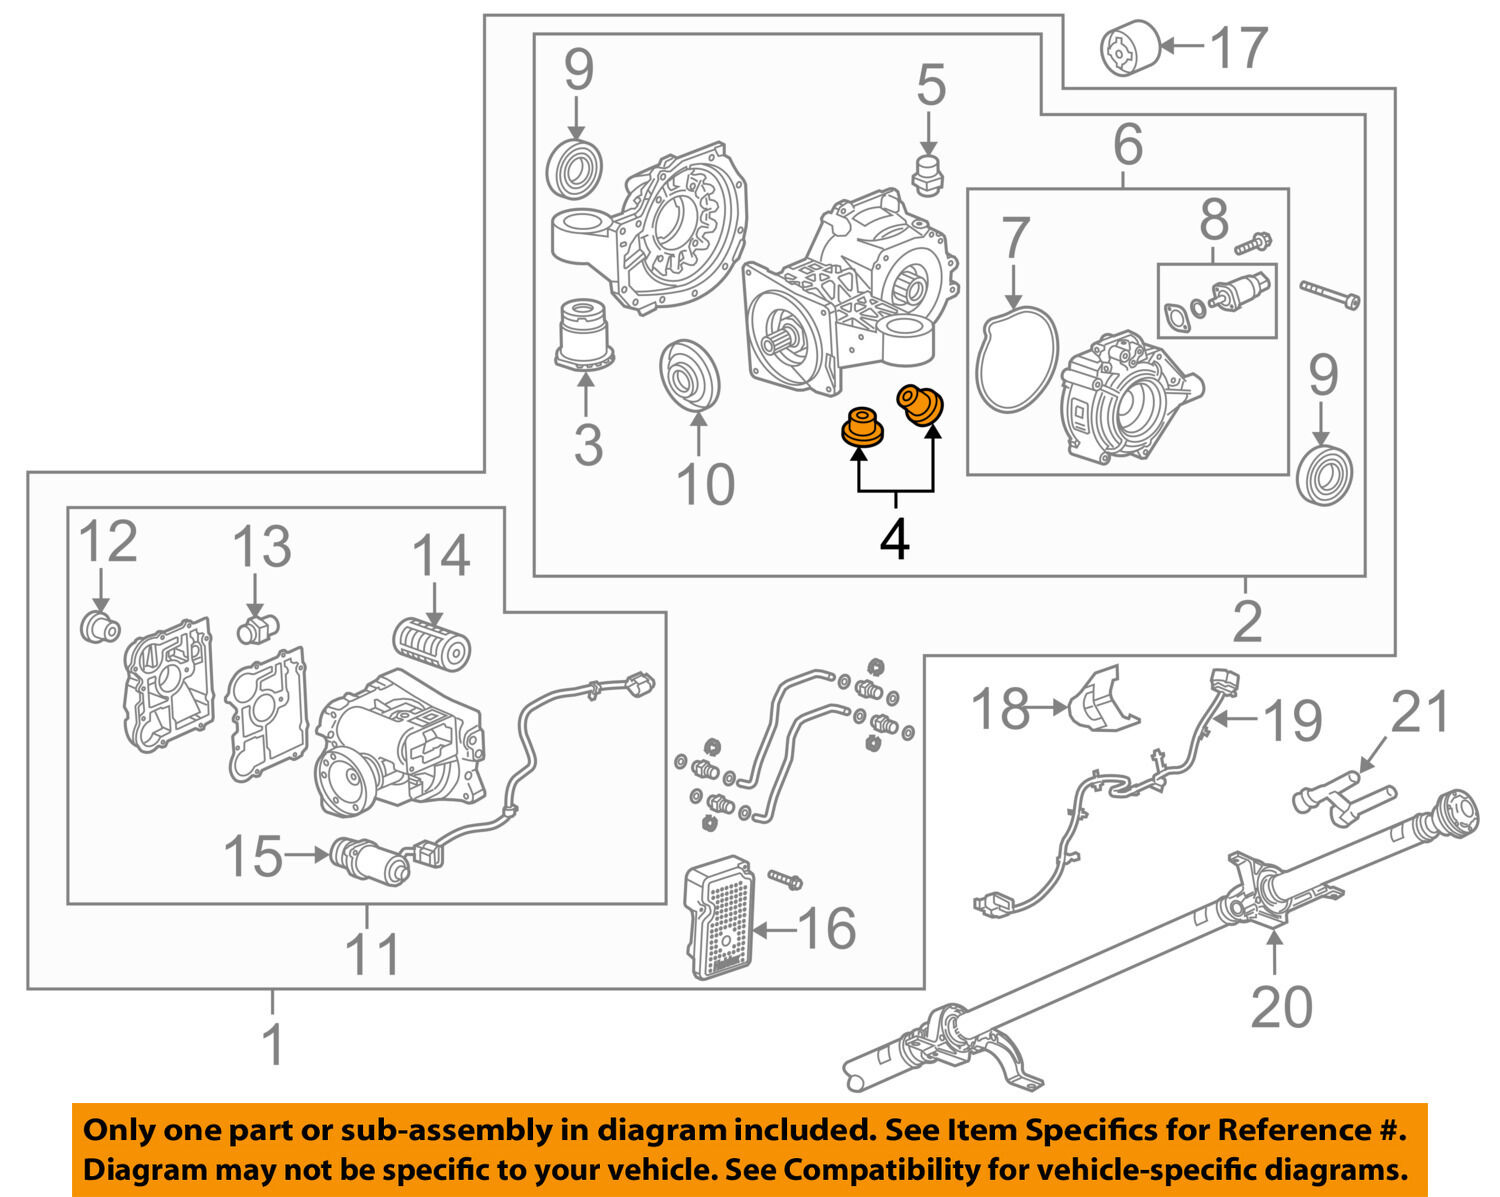 Gm Oem Axle Differential Rear Plug 55573646 Ebay Jeep Cj Dana 30 Front Diagram On Tj Suspension Norton Secured Powered By Verisign